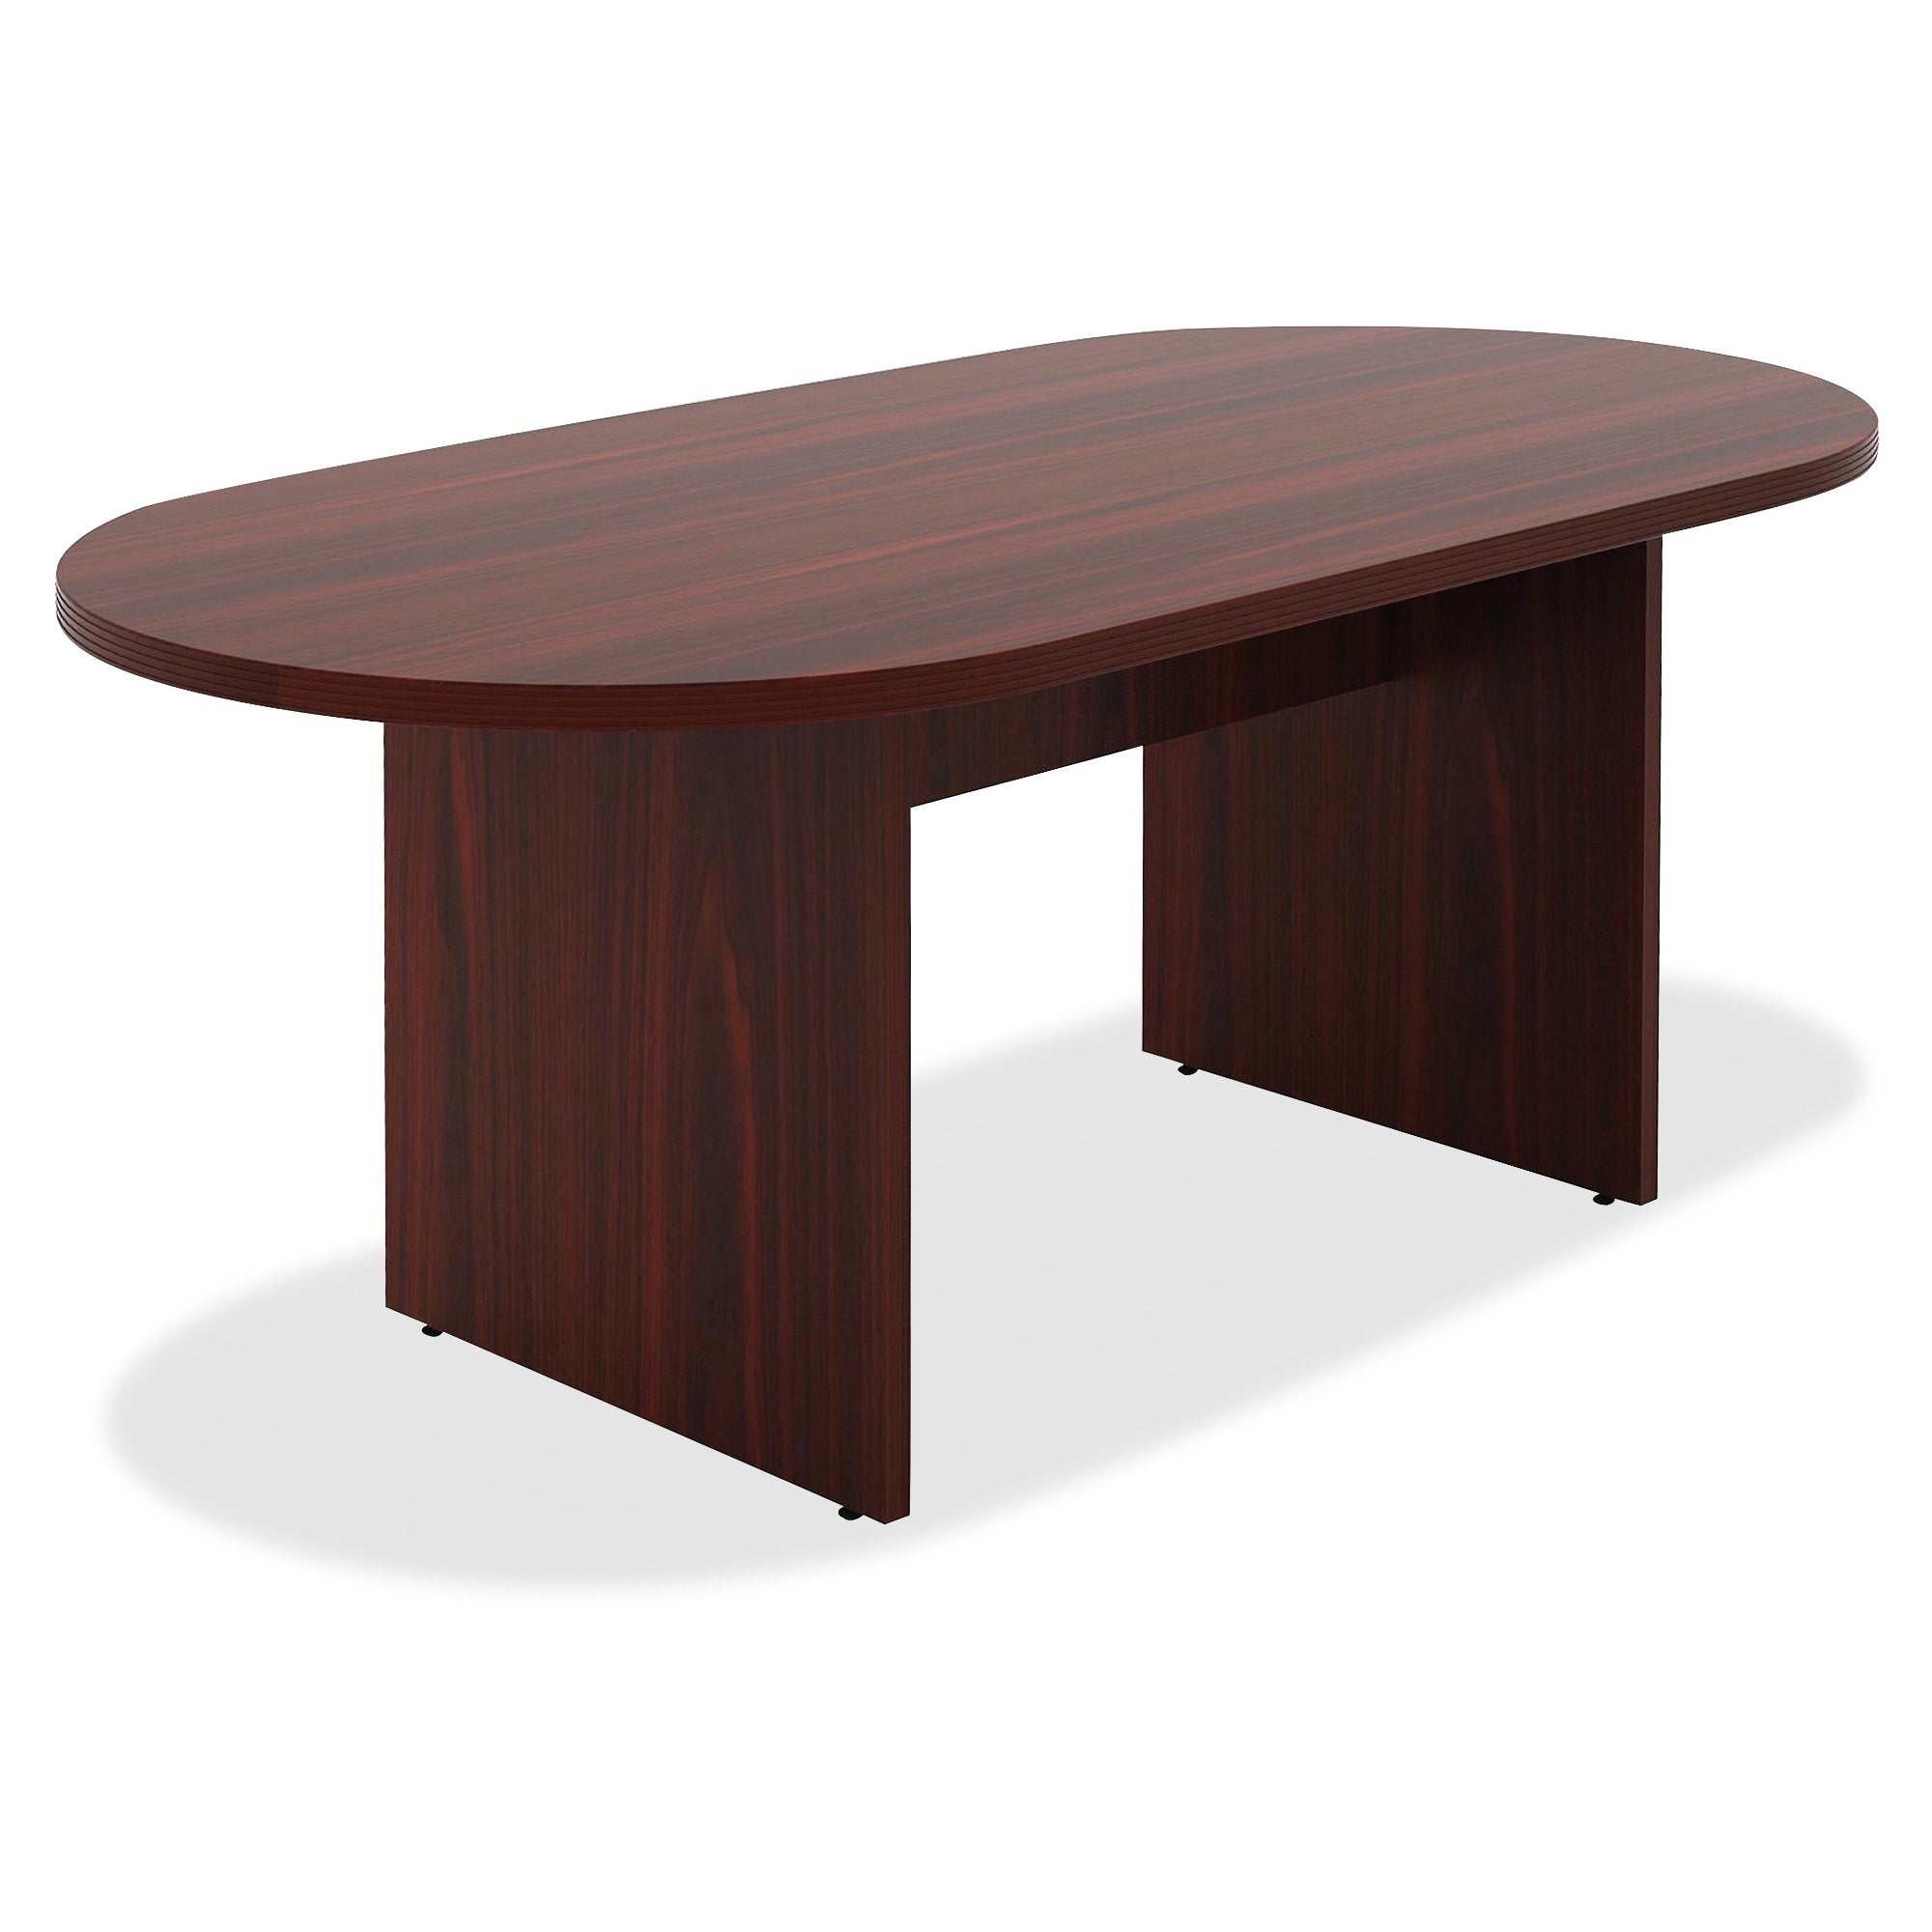 Lorell Chateau Series 4 ft. Mahogany Oval Conference Table